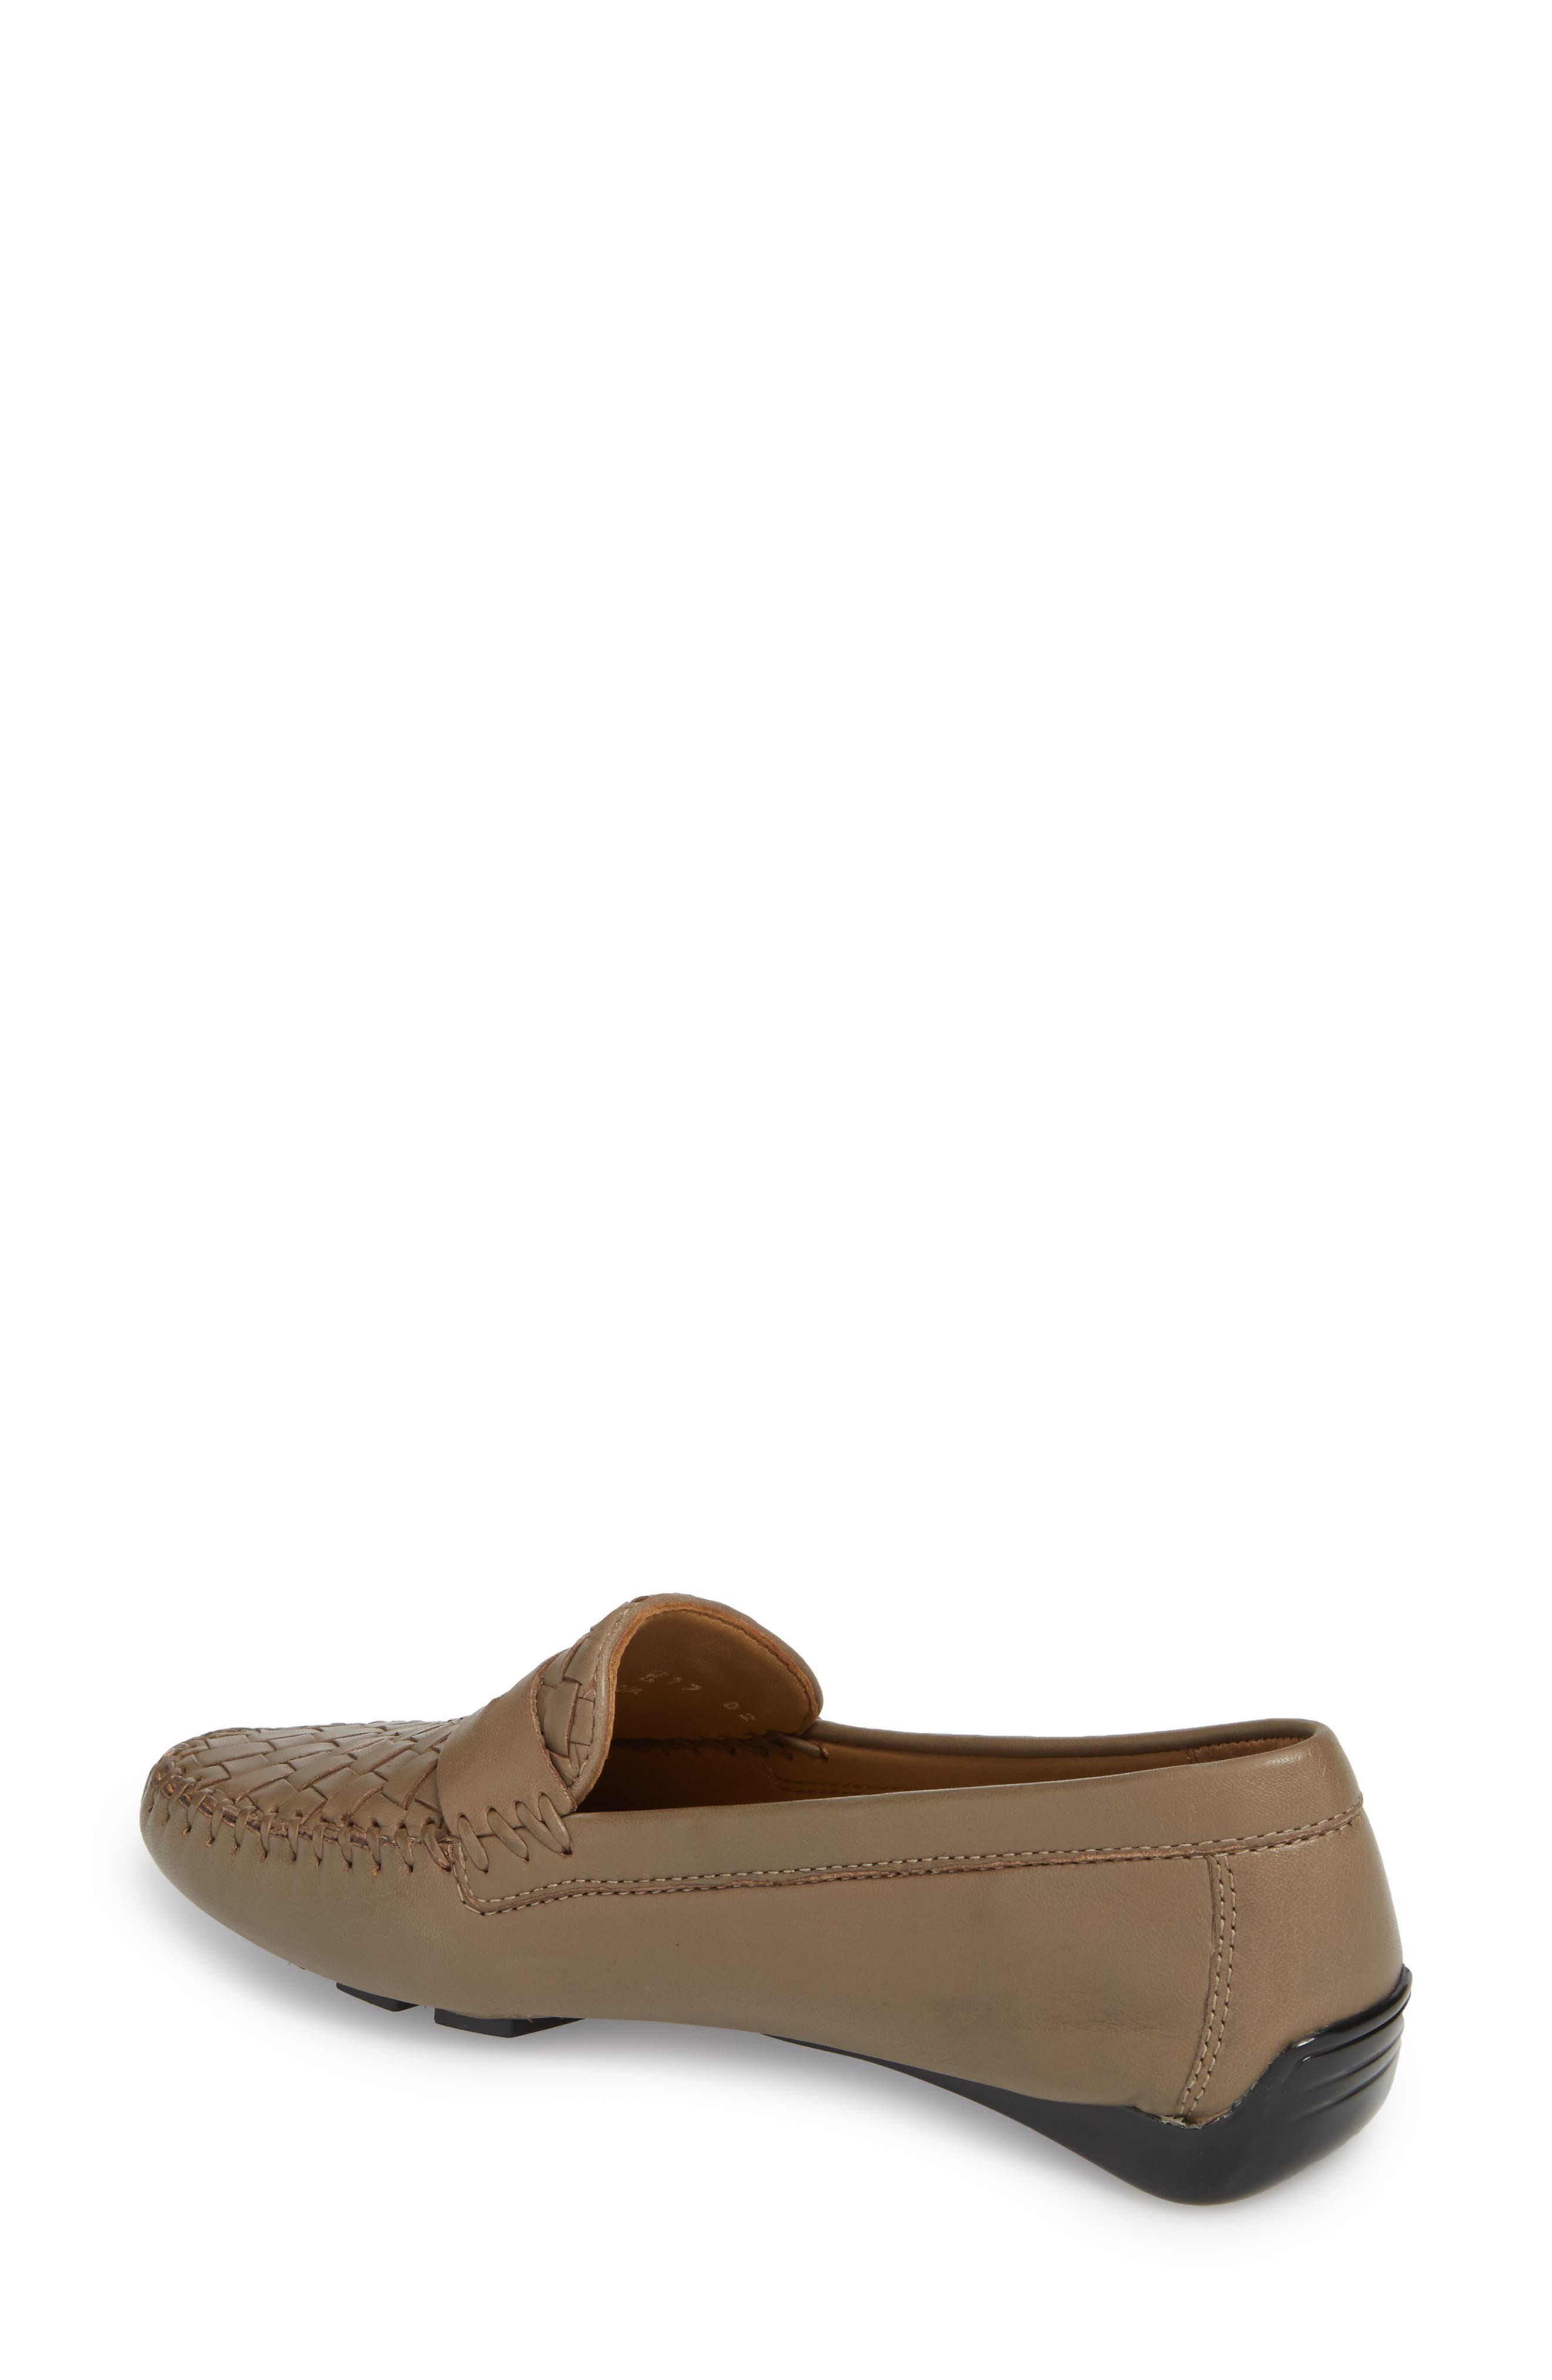 'Petra' Driving Shoe,                             Alternate thumbnail 2, color,                             UMBER LEATHER